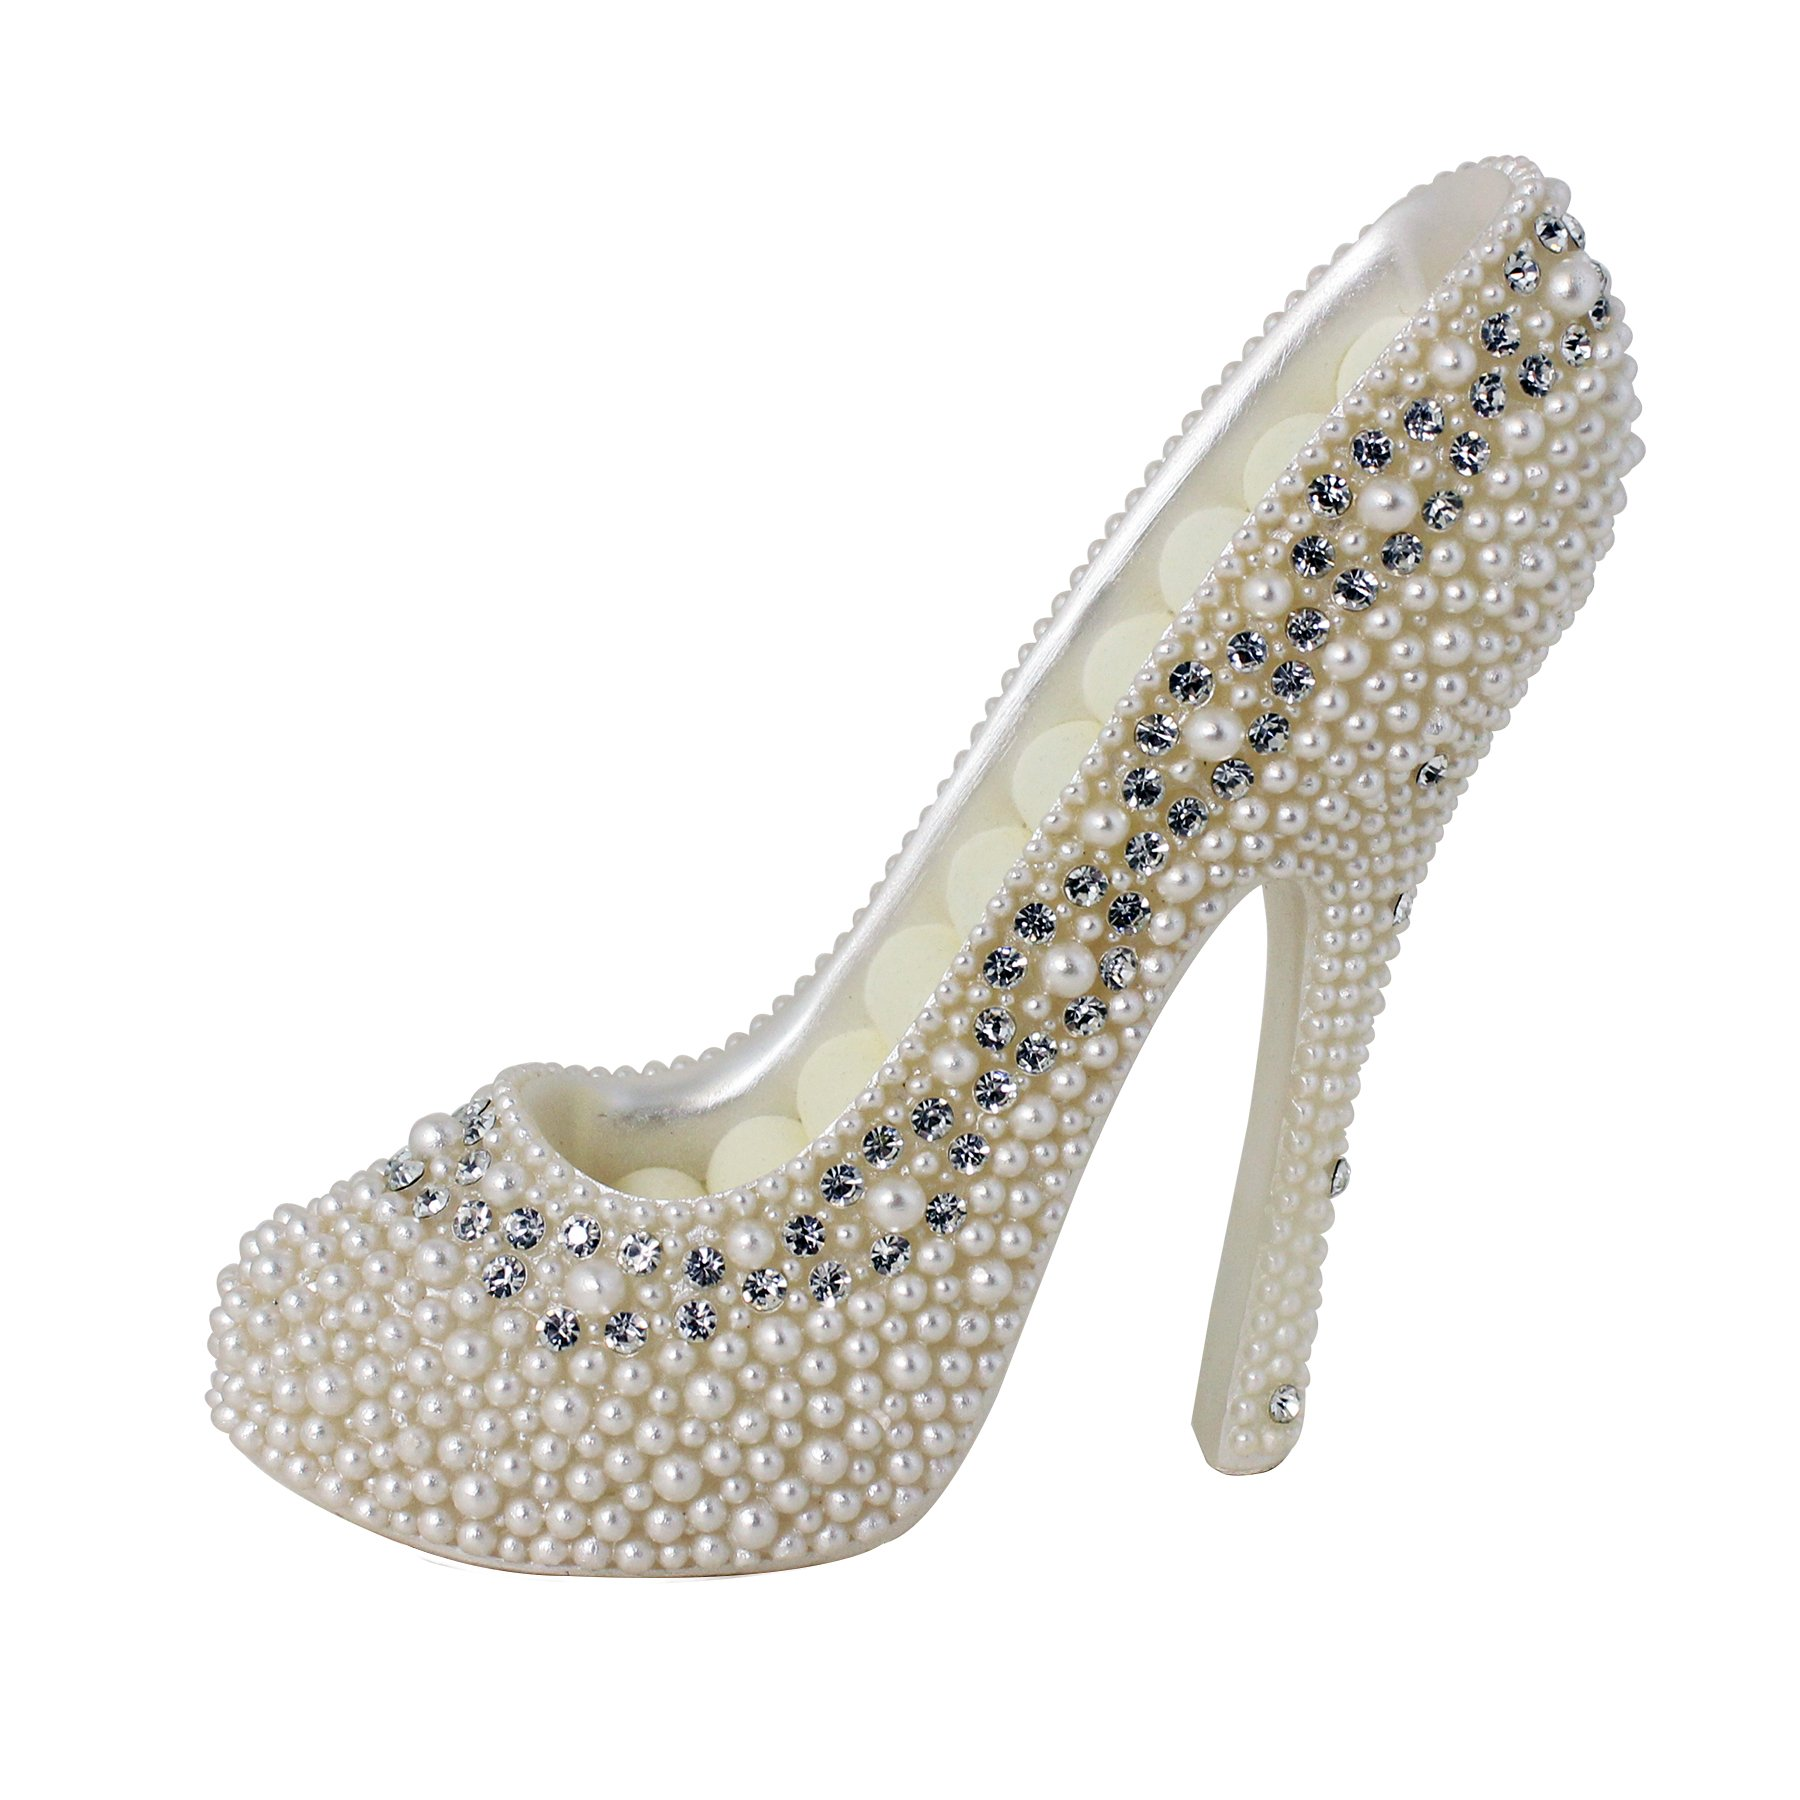 JewelryNanny 8-Ring Shoe Lovers' Simulated Pearl Crystal High Heel Ring Holder Shoe, White